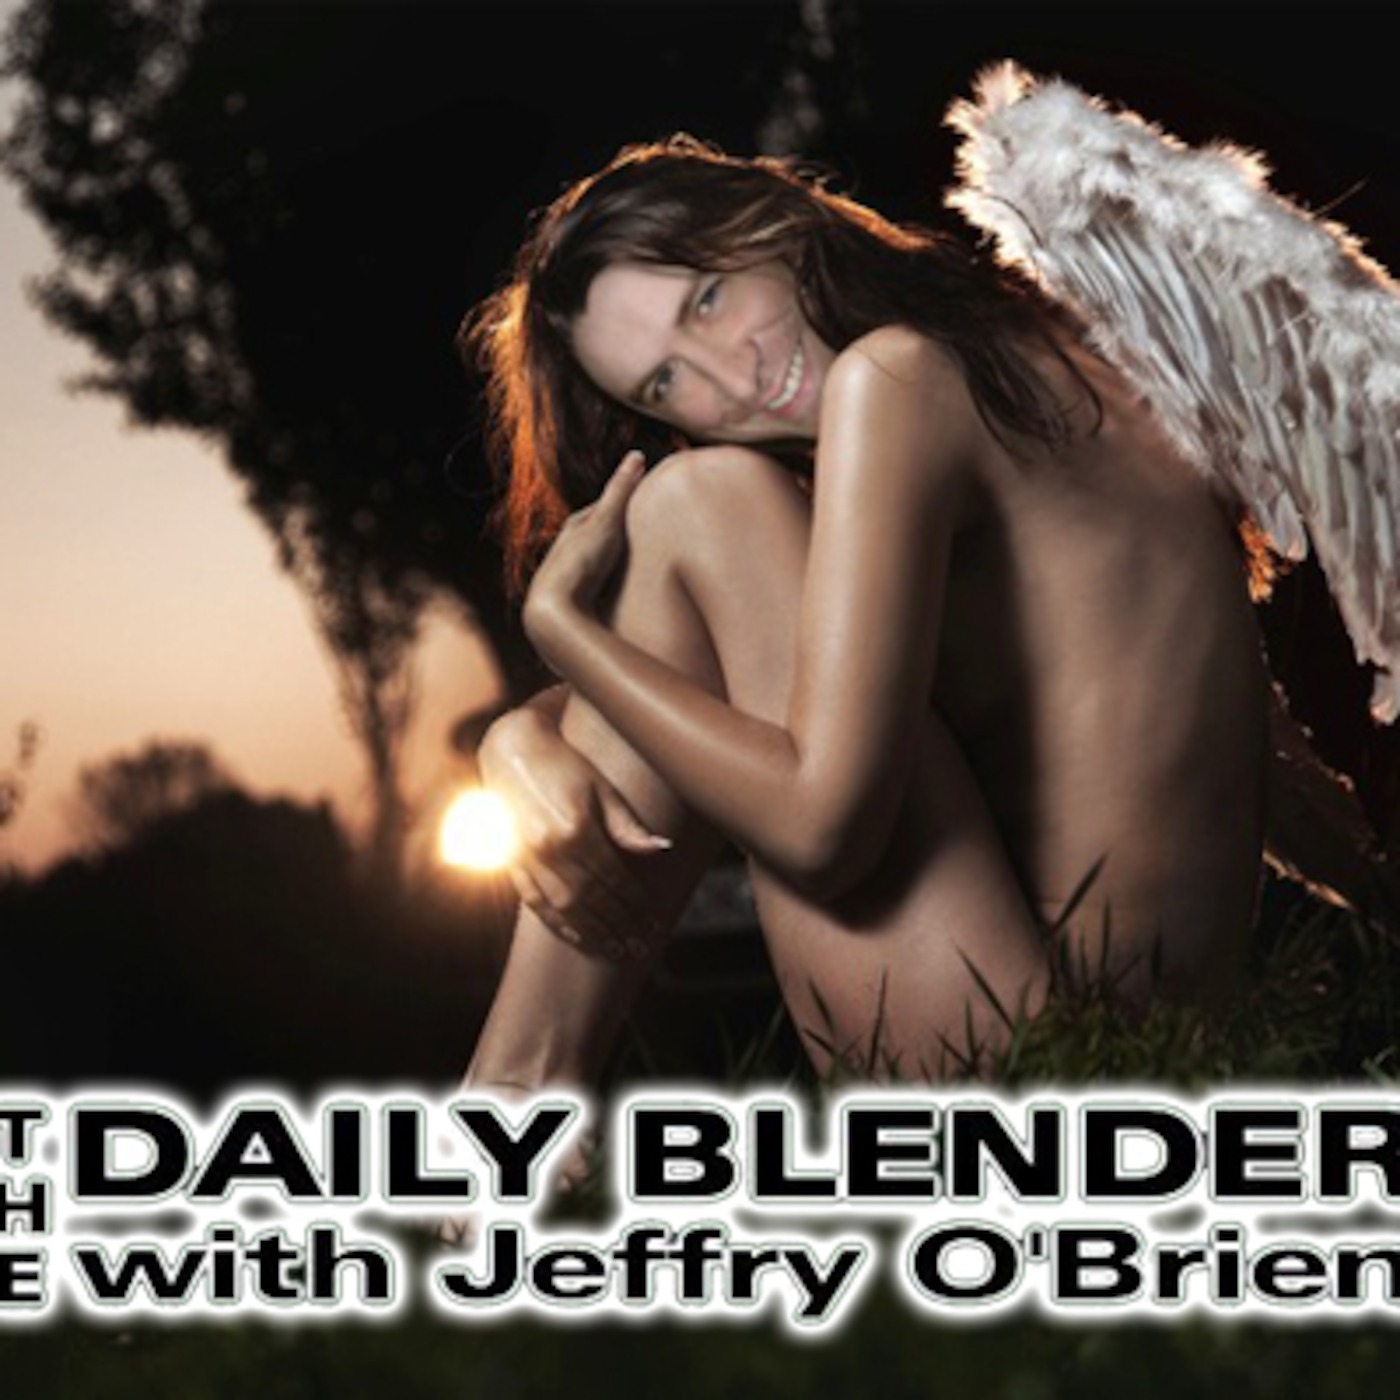 Open sexy photofunia sex gallery